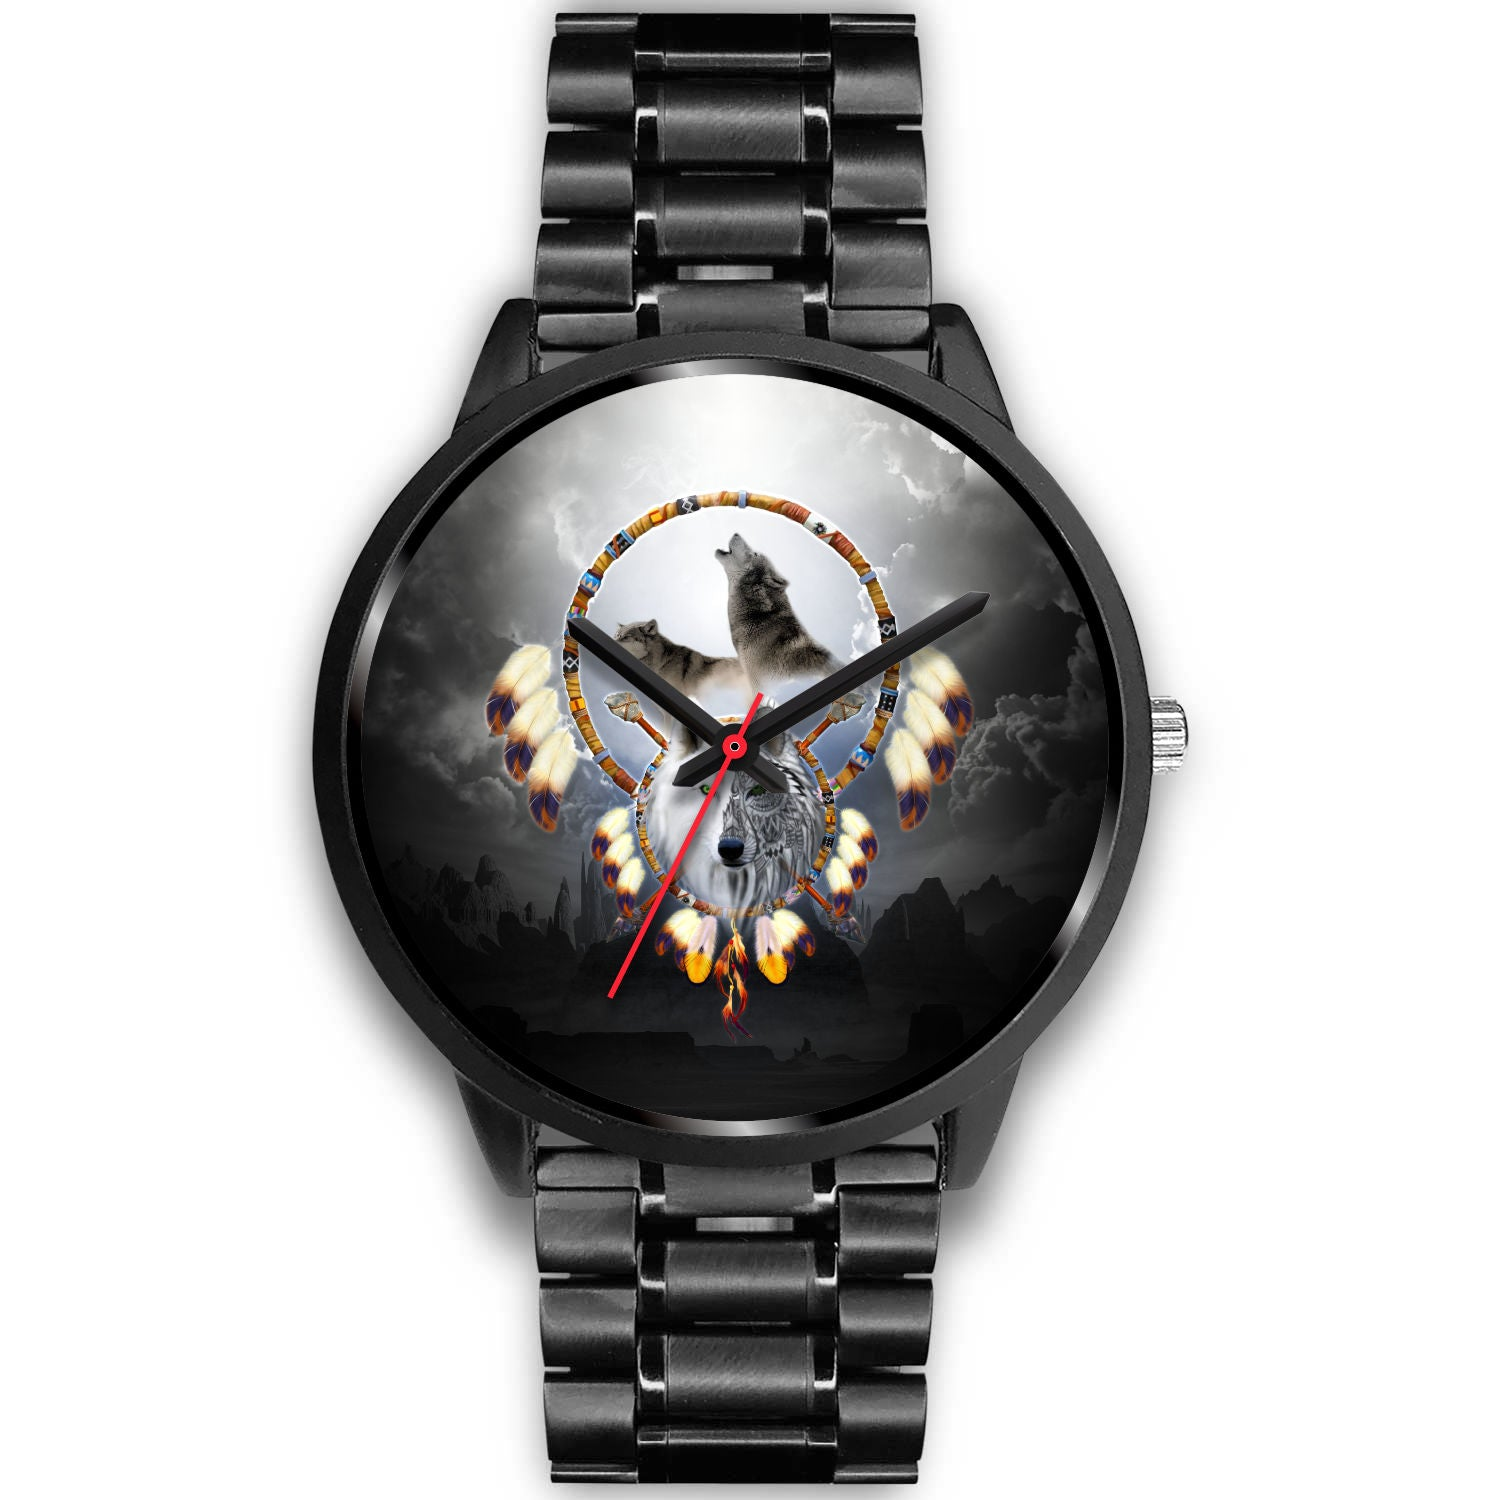 Omega Wolf Watch